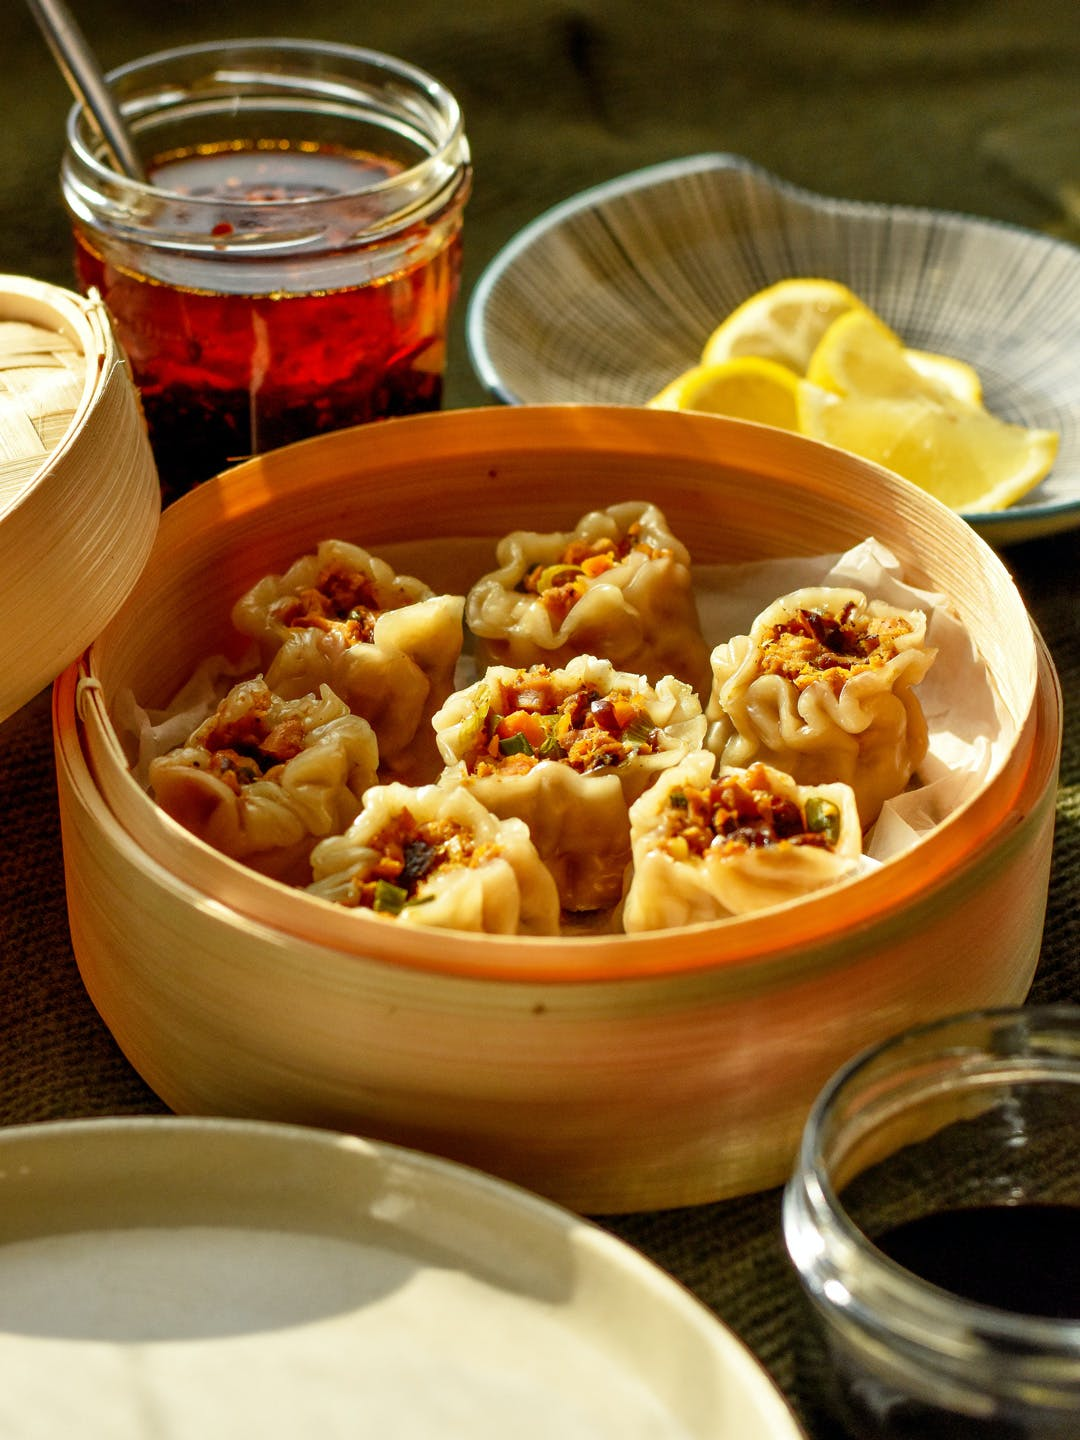 vegan filipino siomai in a bamboo steamer served with garlic chilli oil, lemon wedges and soy sauce